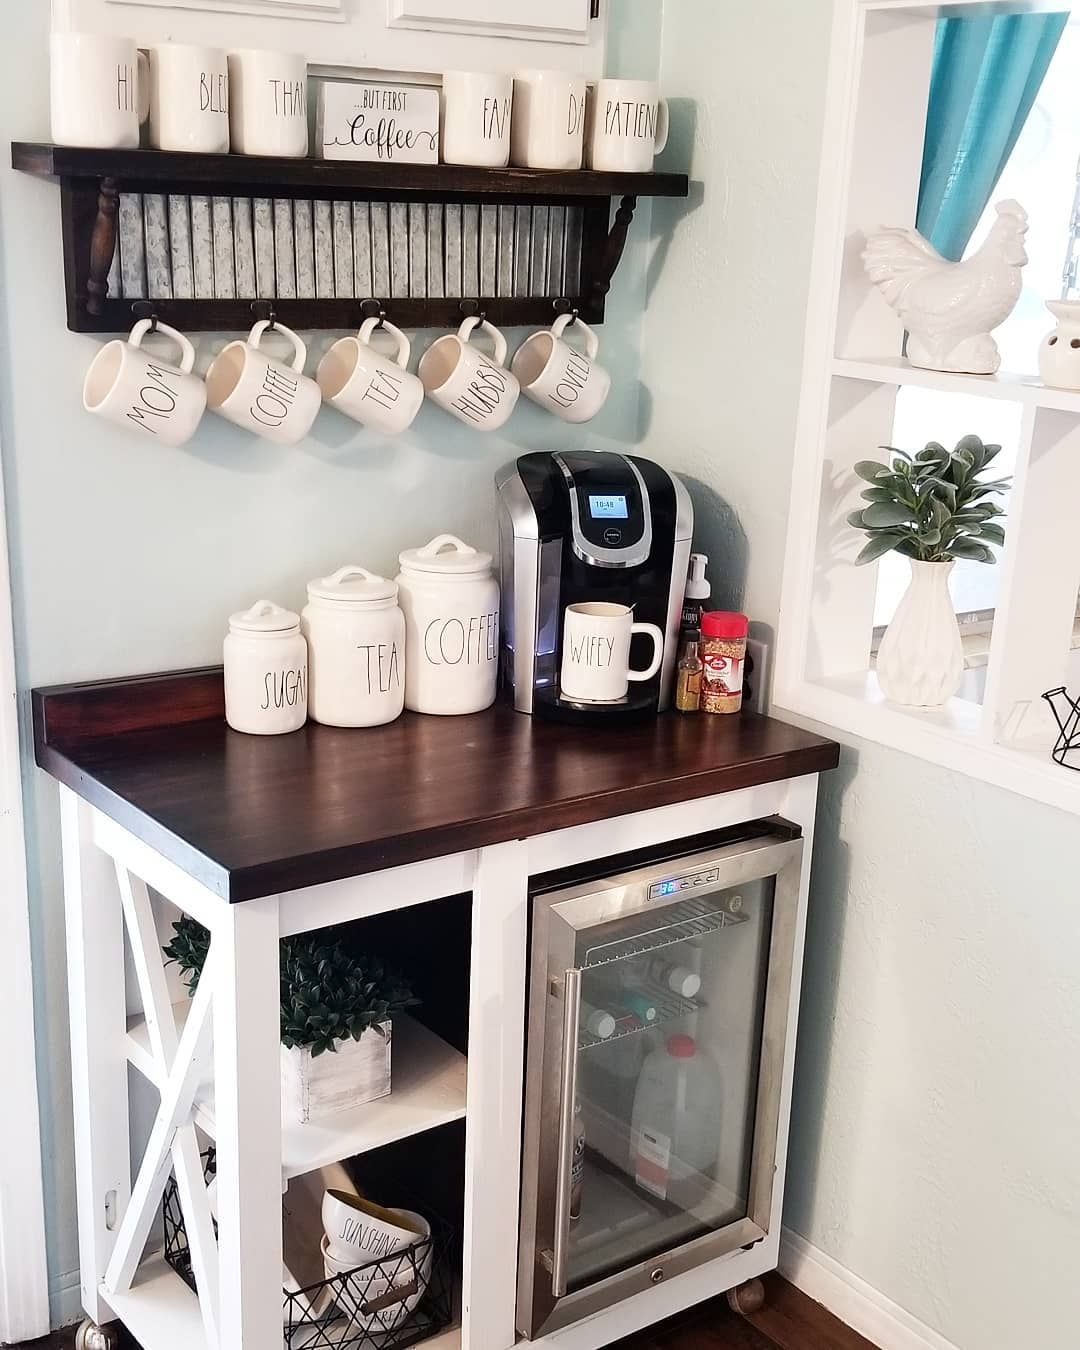 ccoffee anyone   coffee station kitchen home stations also best diy bar ideas for all lovers rh pinterest